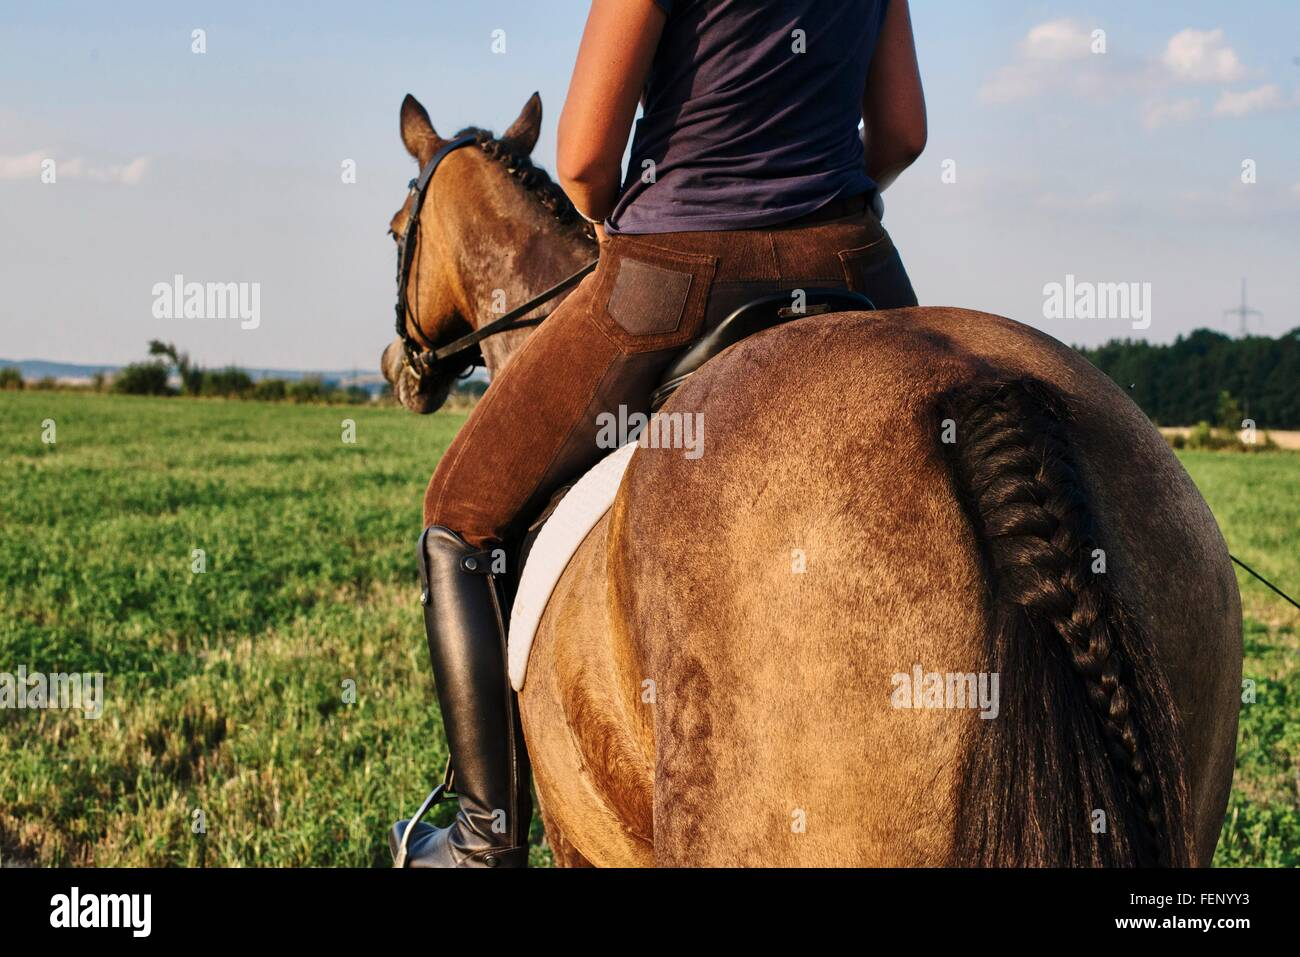 Rear view of woman riding bay horse in field - Stock Image